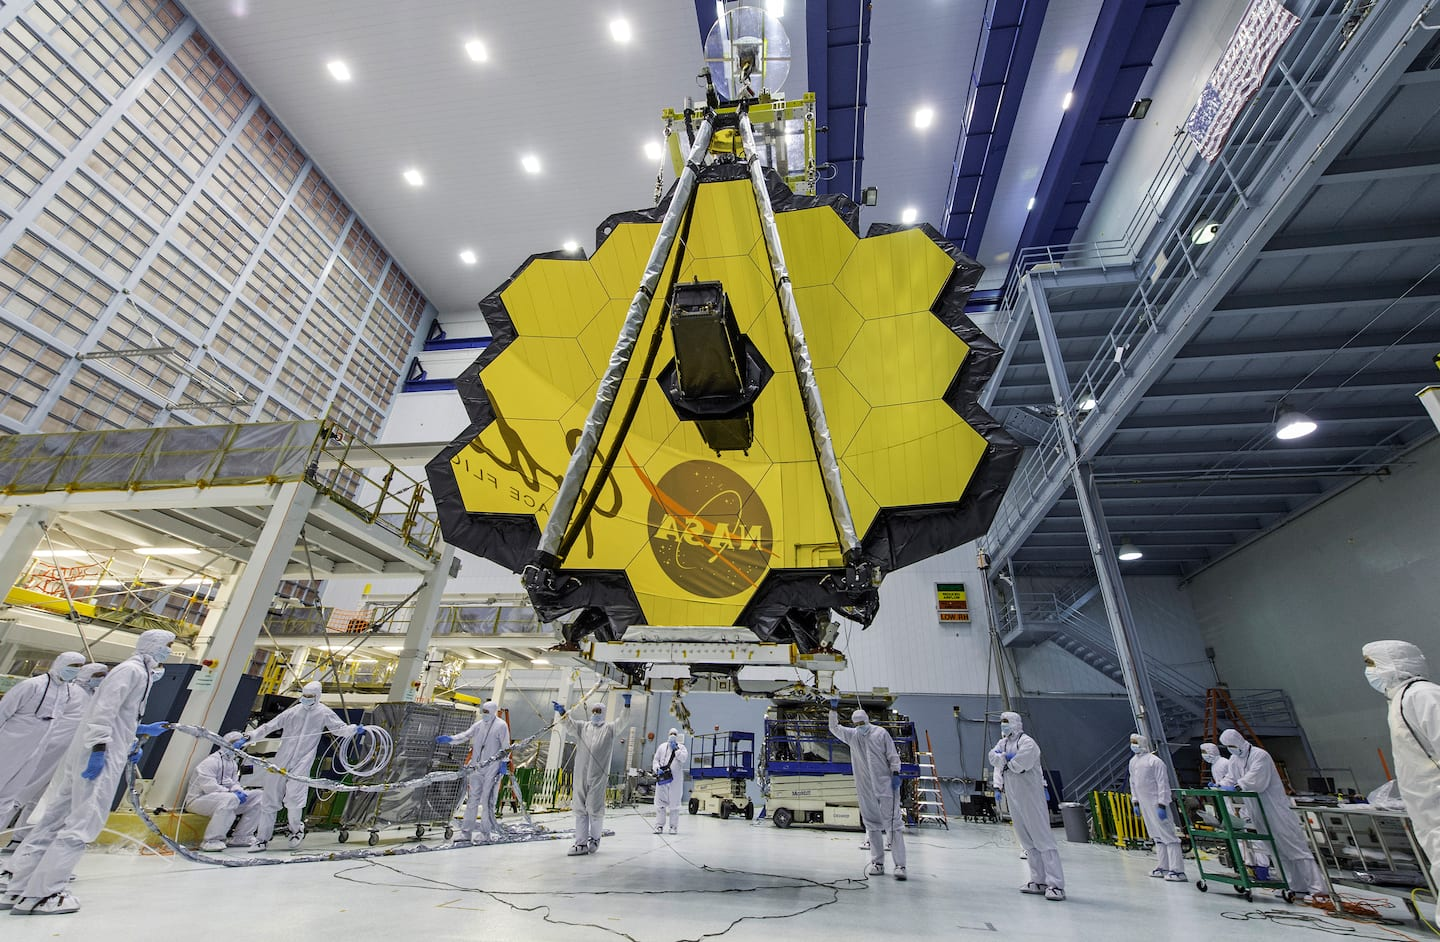 James Webb Space Telescope: Astronomy's rise of female leaders featured in SXSW documentary 'The Hunt for Planet B'